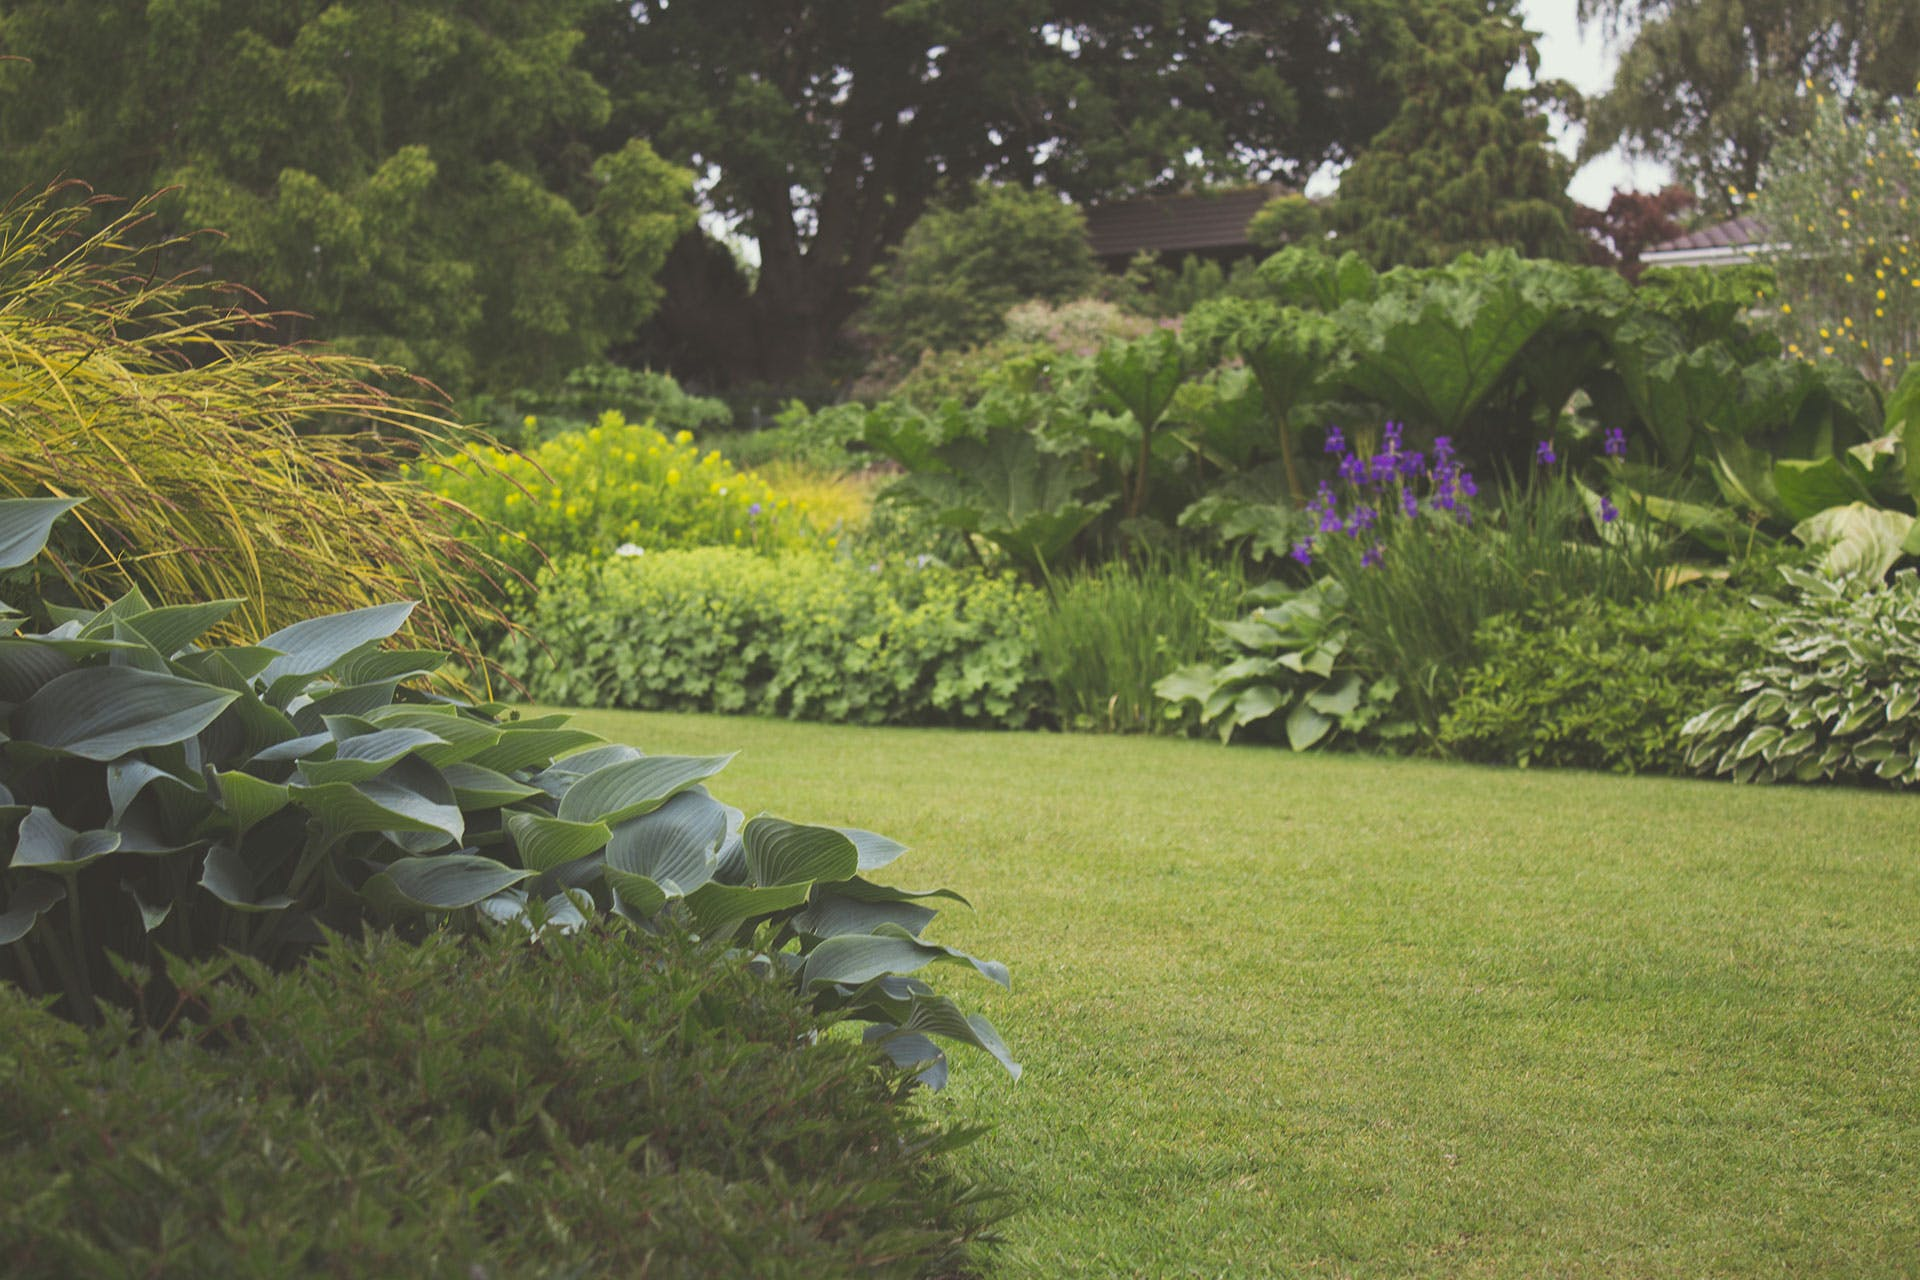 Free stock photo of garden, grass, lawn, leaves